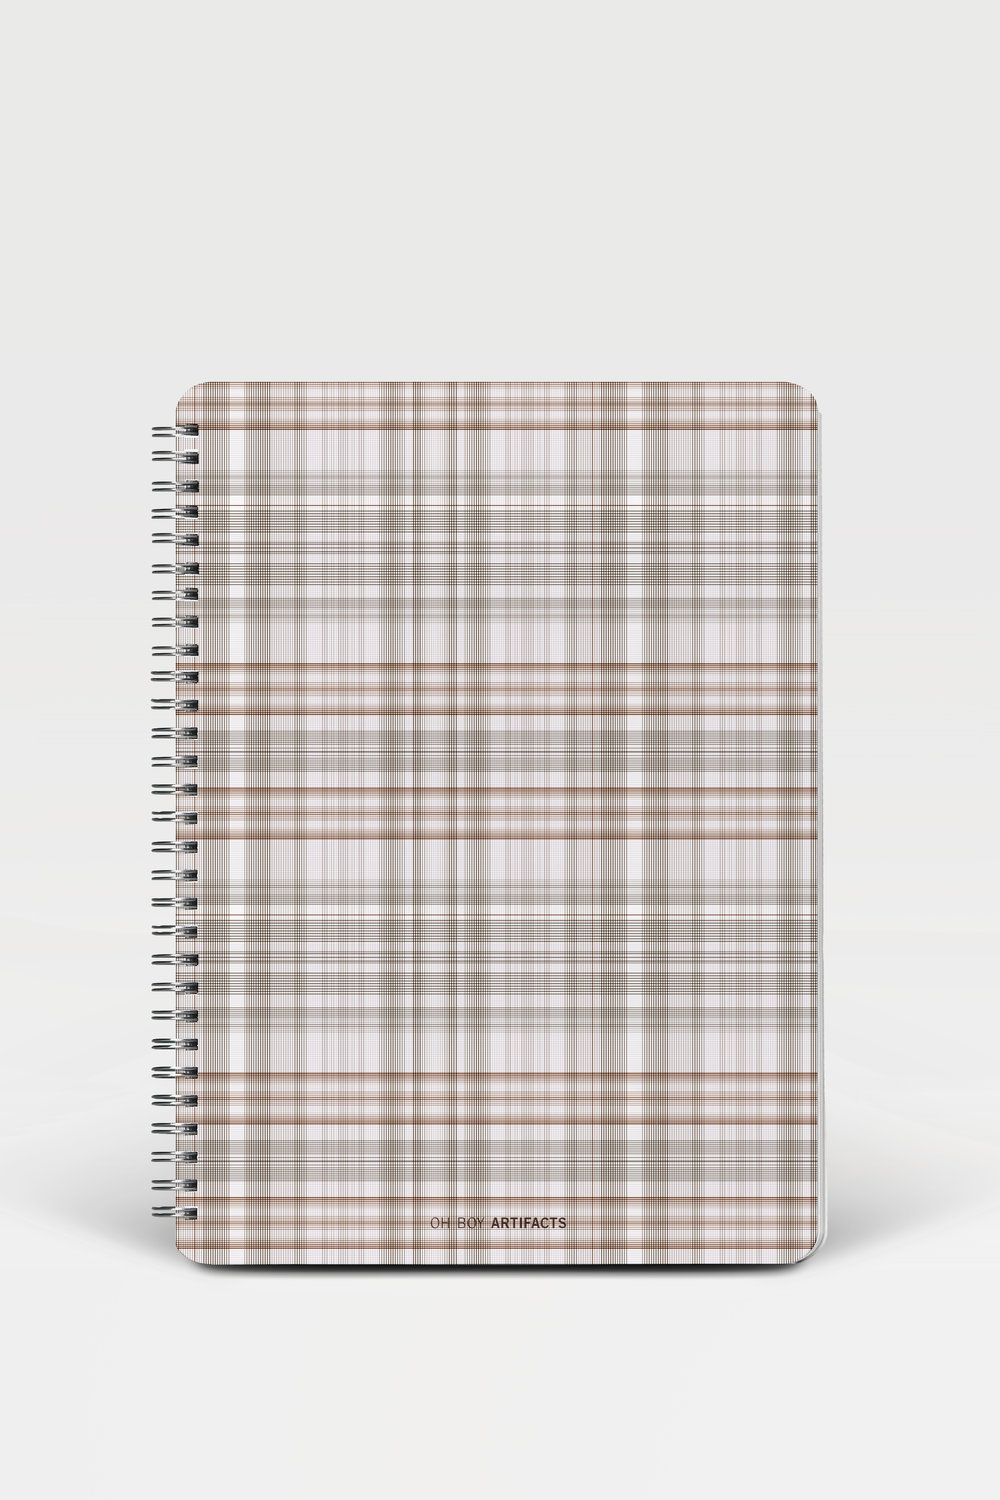 OH BOY ARTIFACTS  Notebook In Ludlow plaid in  B  utorfléoge  (below), 2018 9.25 × 7.25 inches Lithography Oh Boy Artifacts 2018 collection  132 ruled 80 lb text weight, lay-flat, Wire-O bound pages with hardboard, stain-resistant, moisture-repellent covers